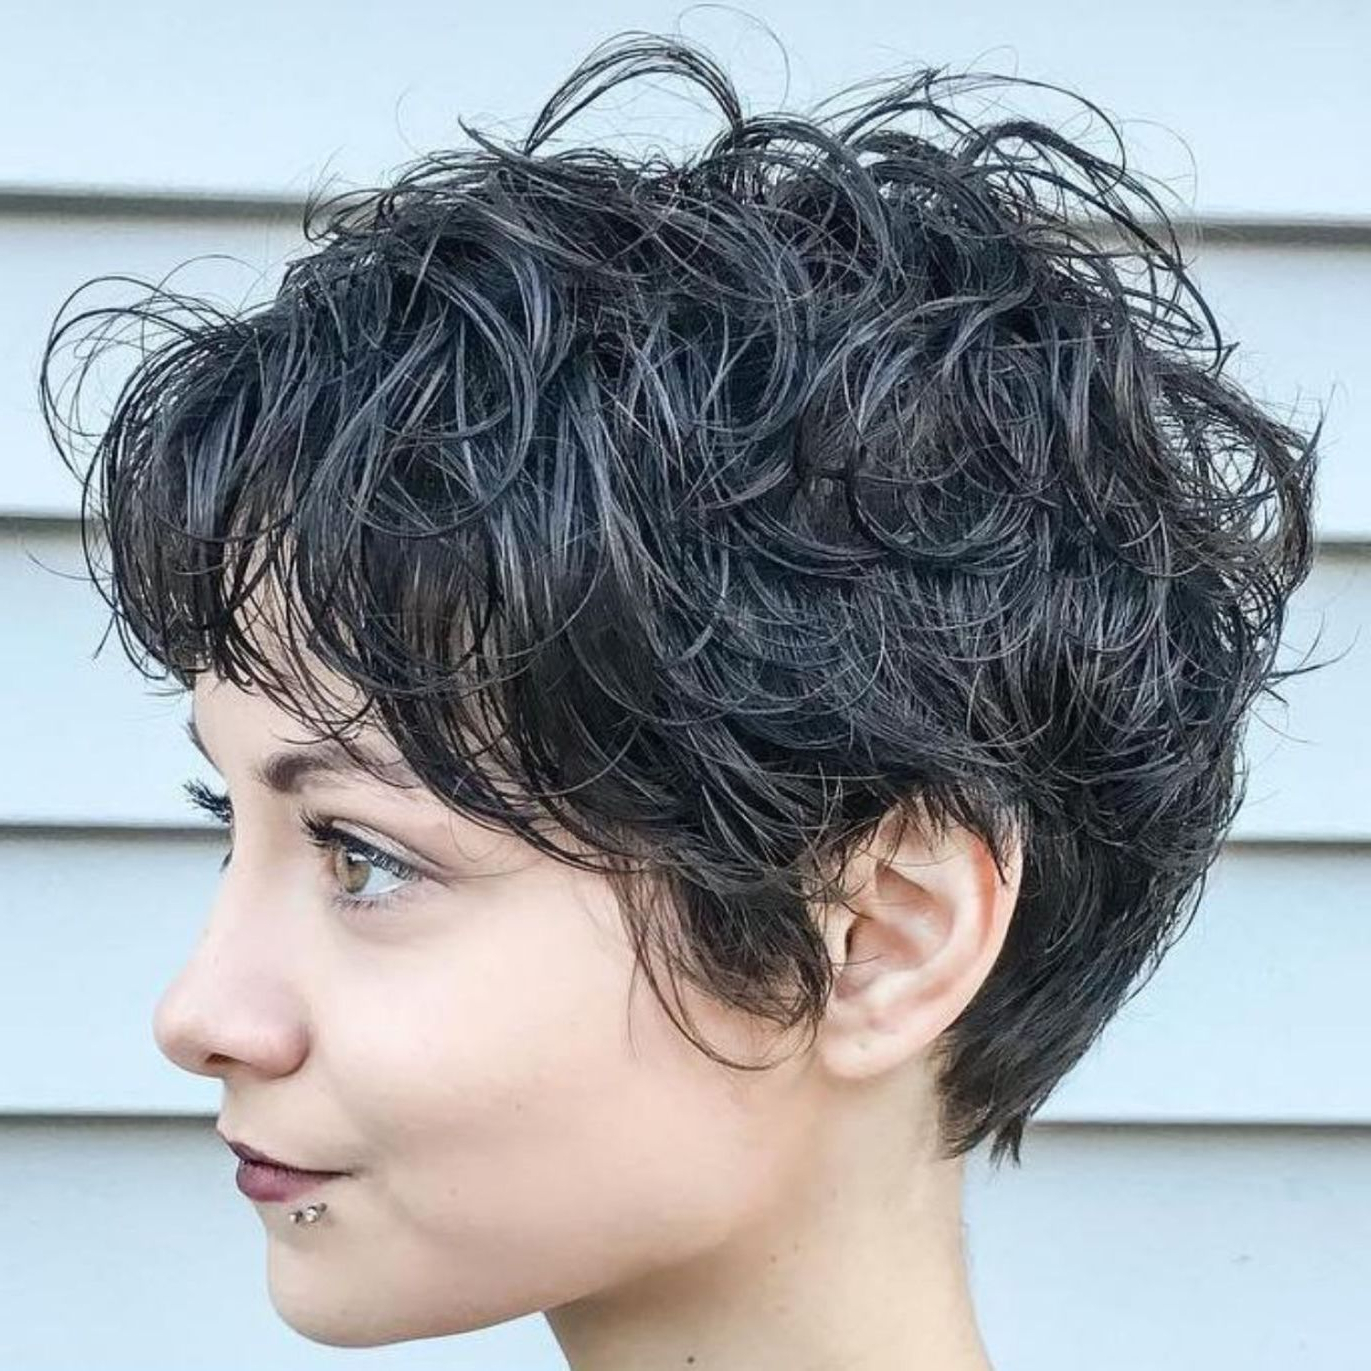 60 Short Shag Hairstyles That You Simply Can't Miss In 2018 | Short Within Long Messy Curly Pixie Haircuts (View 7 of 25)